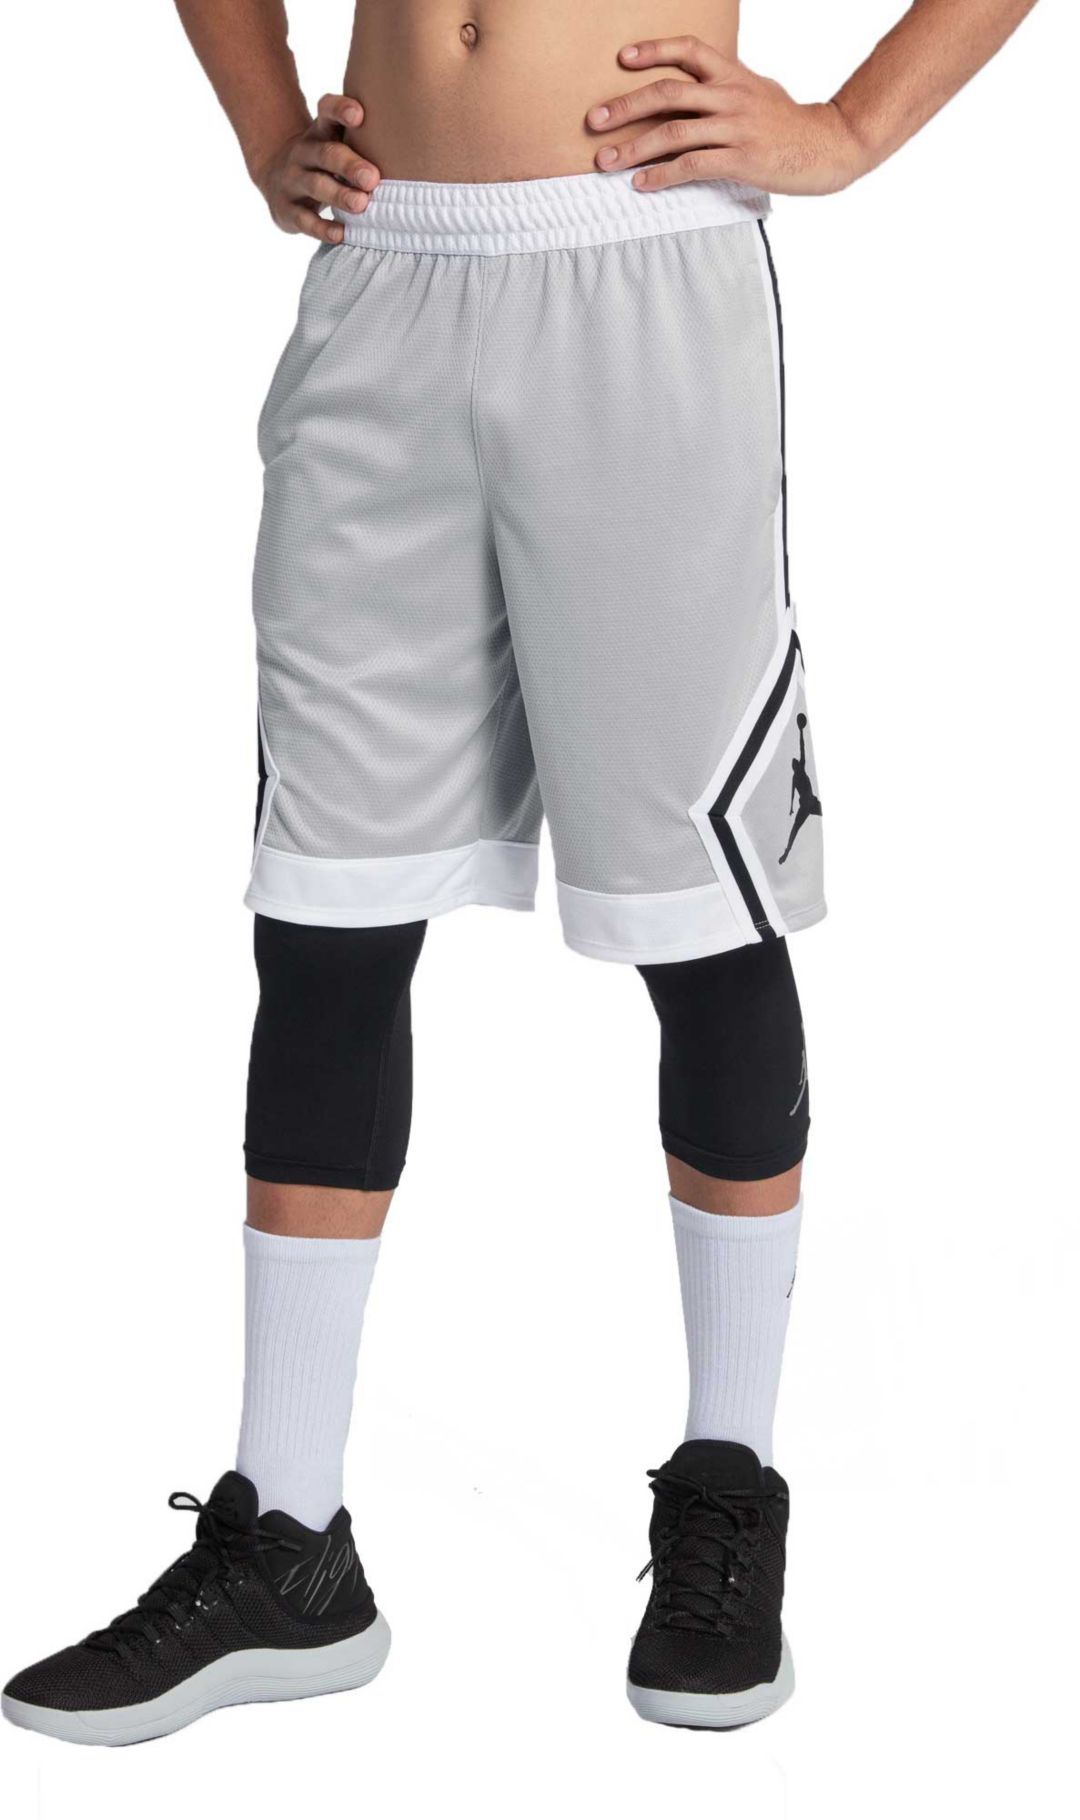 a65620ce271 Jordan Men's Rise Diamond Basketball Shorts | DICK'S Sporting Goods